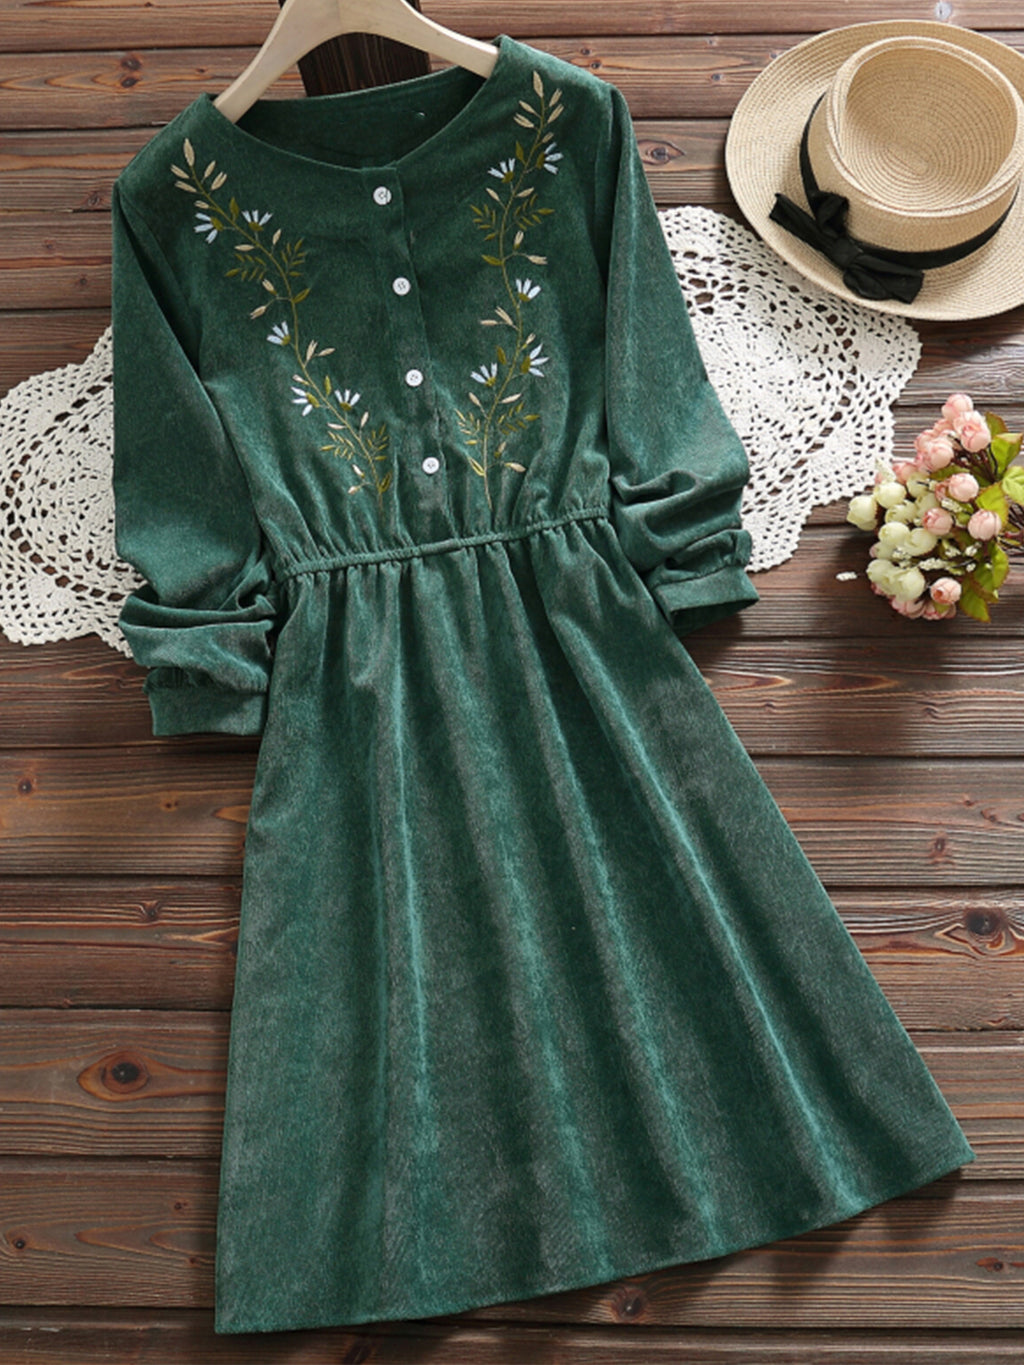 Fall/Winter Corduory Embroidery Top Long Sleeve Women Dress